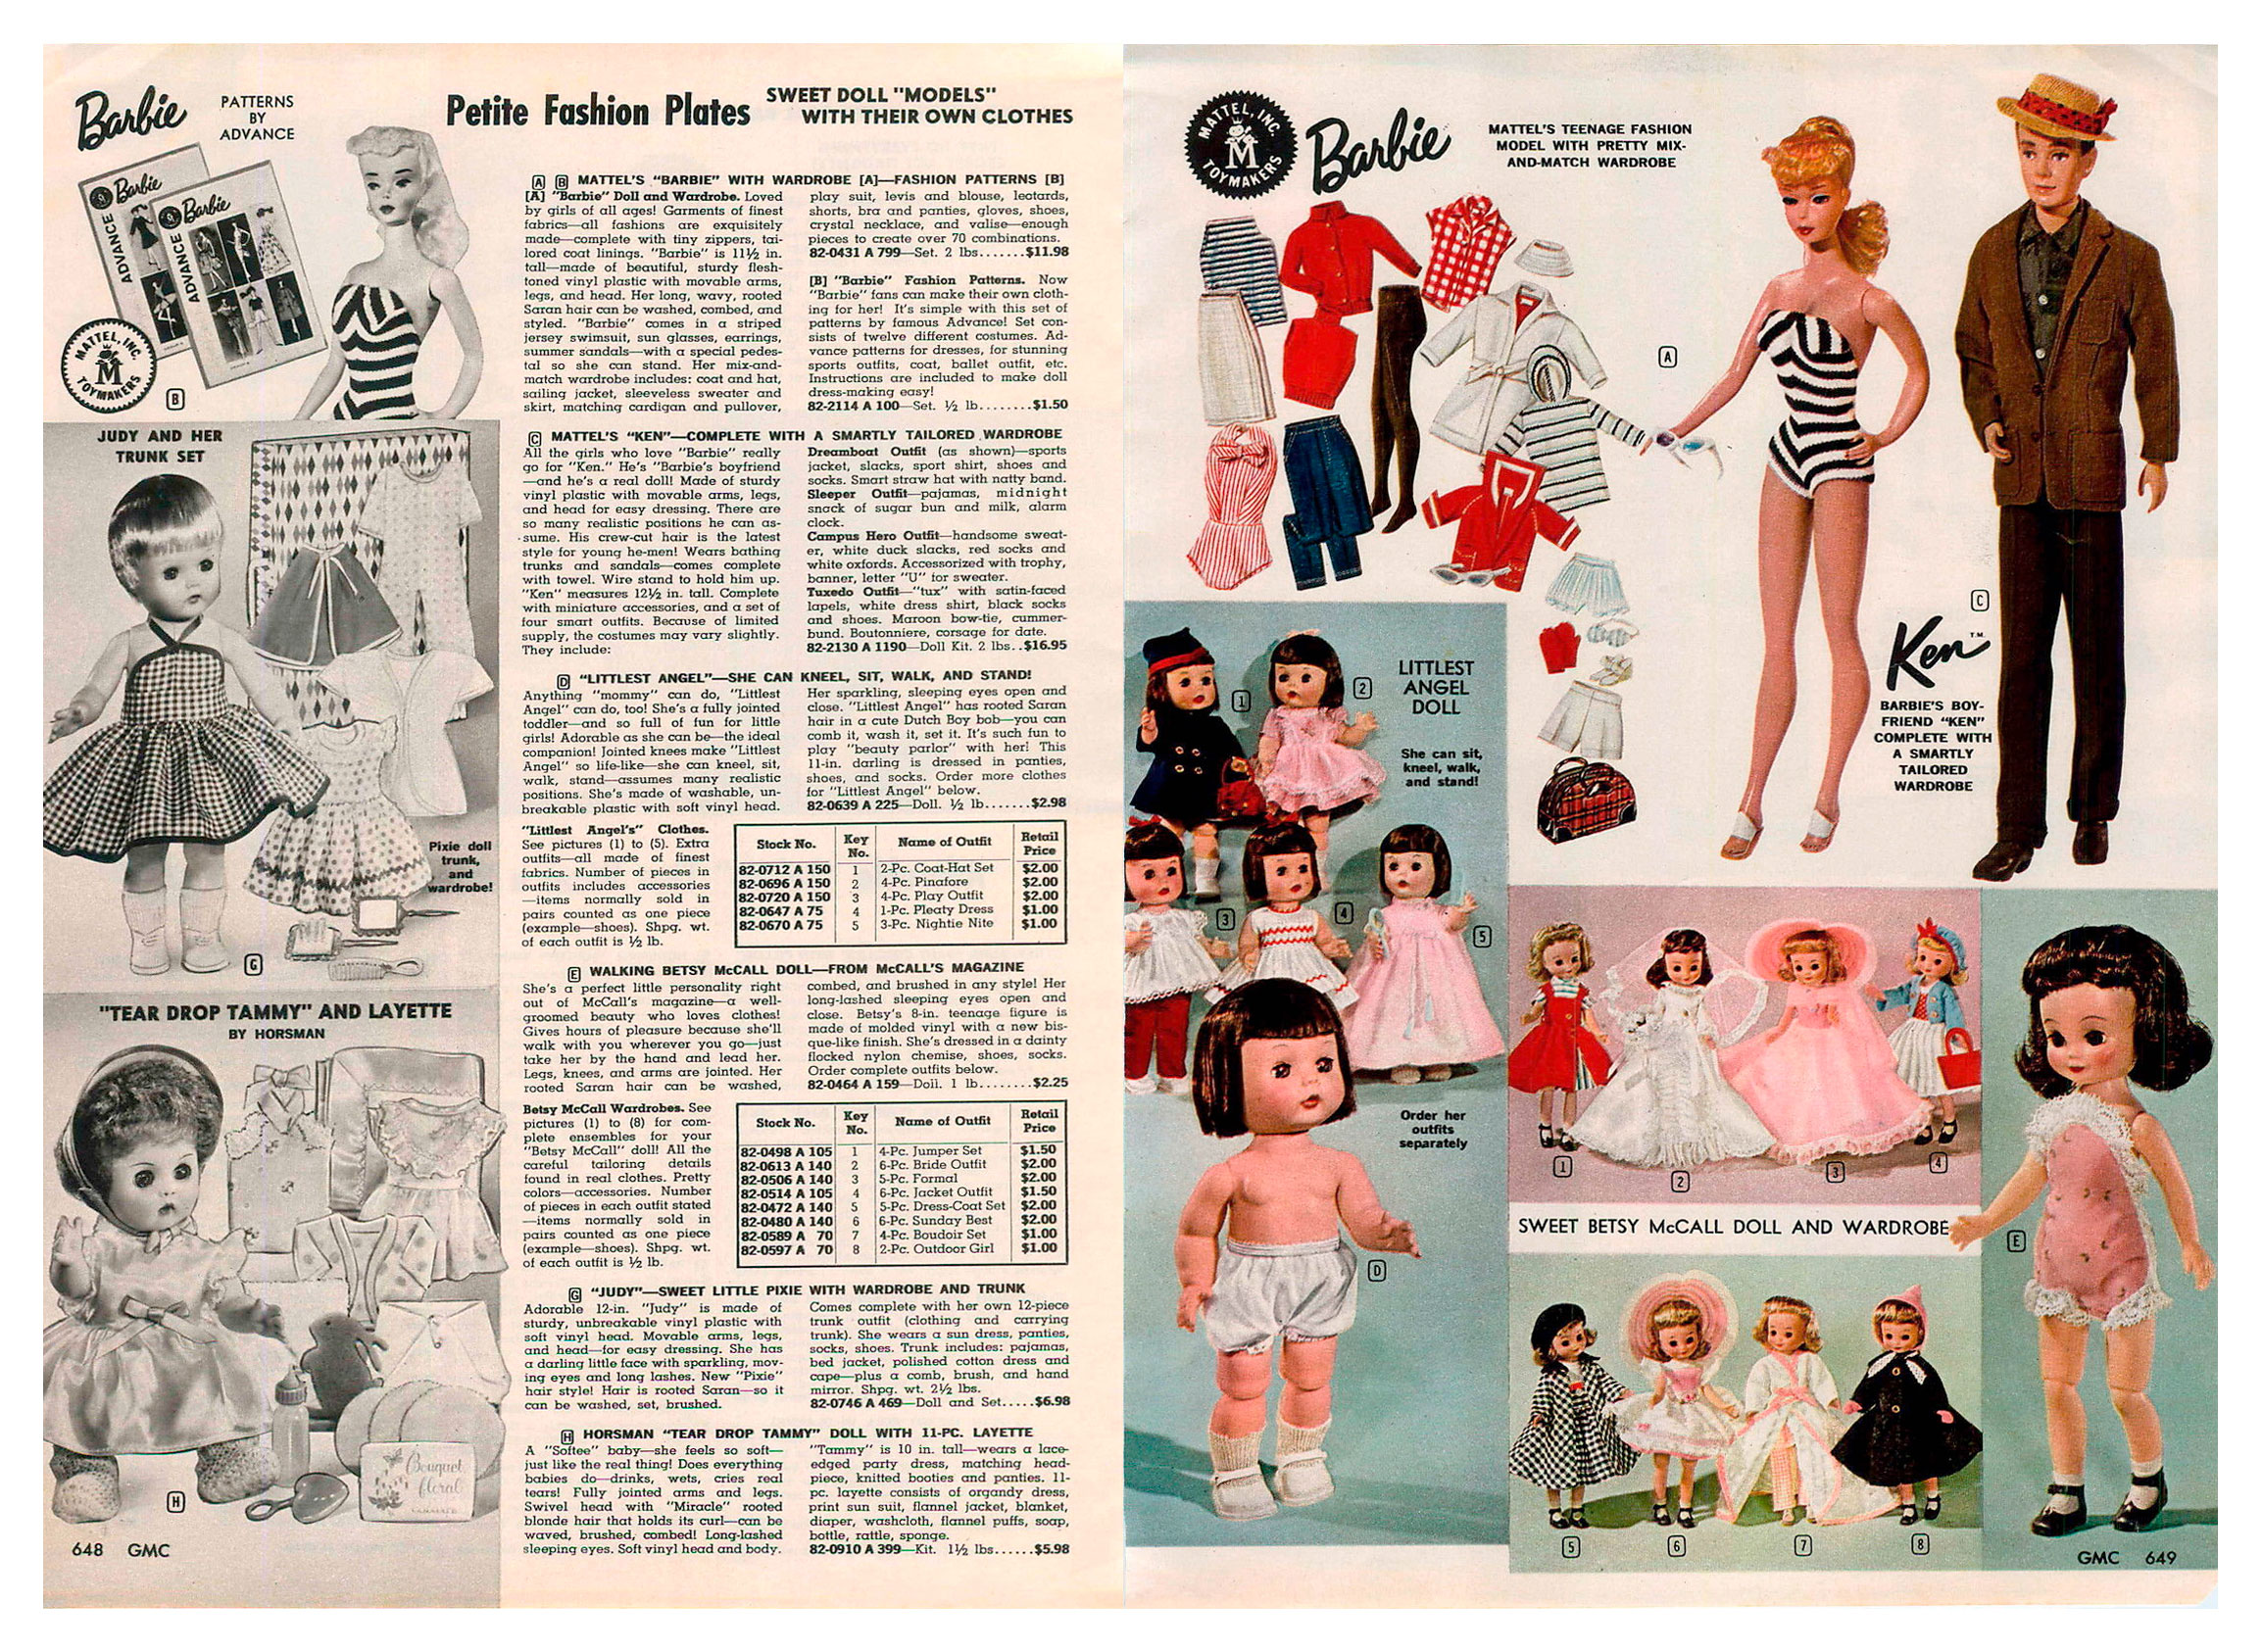 From 1961 General Merchandise Company catalogue